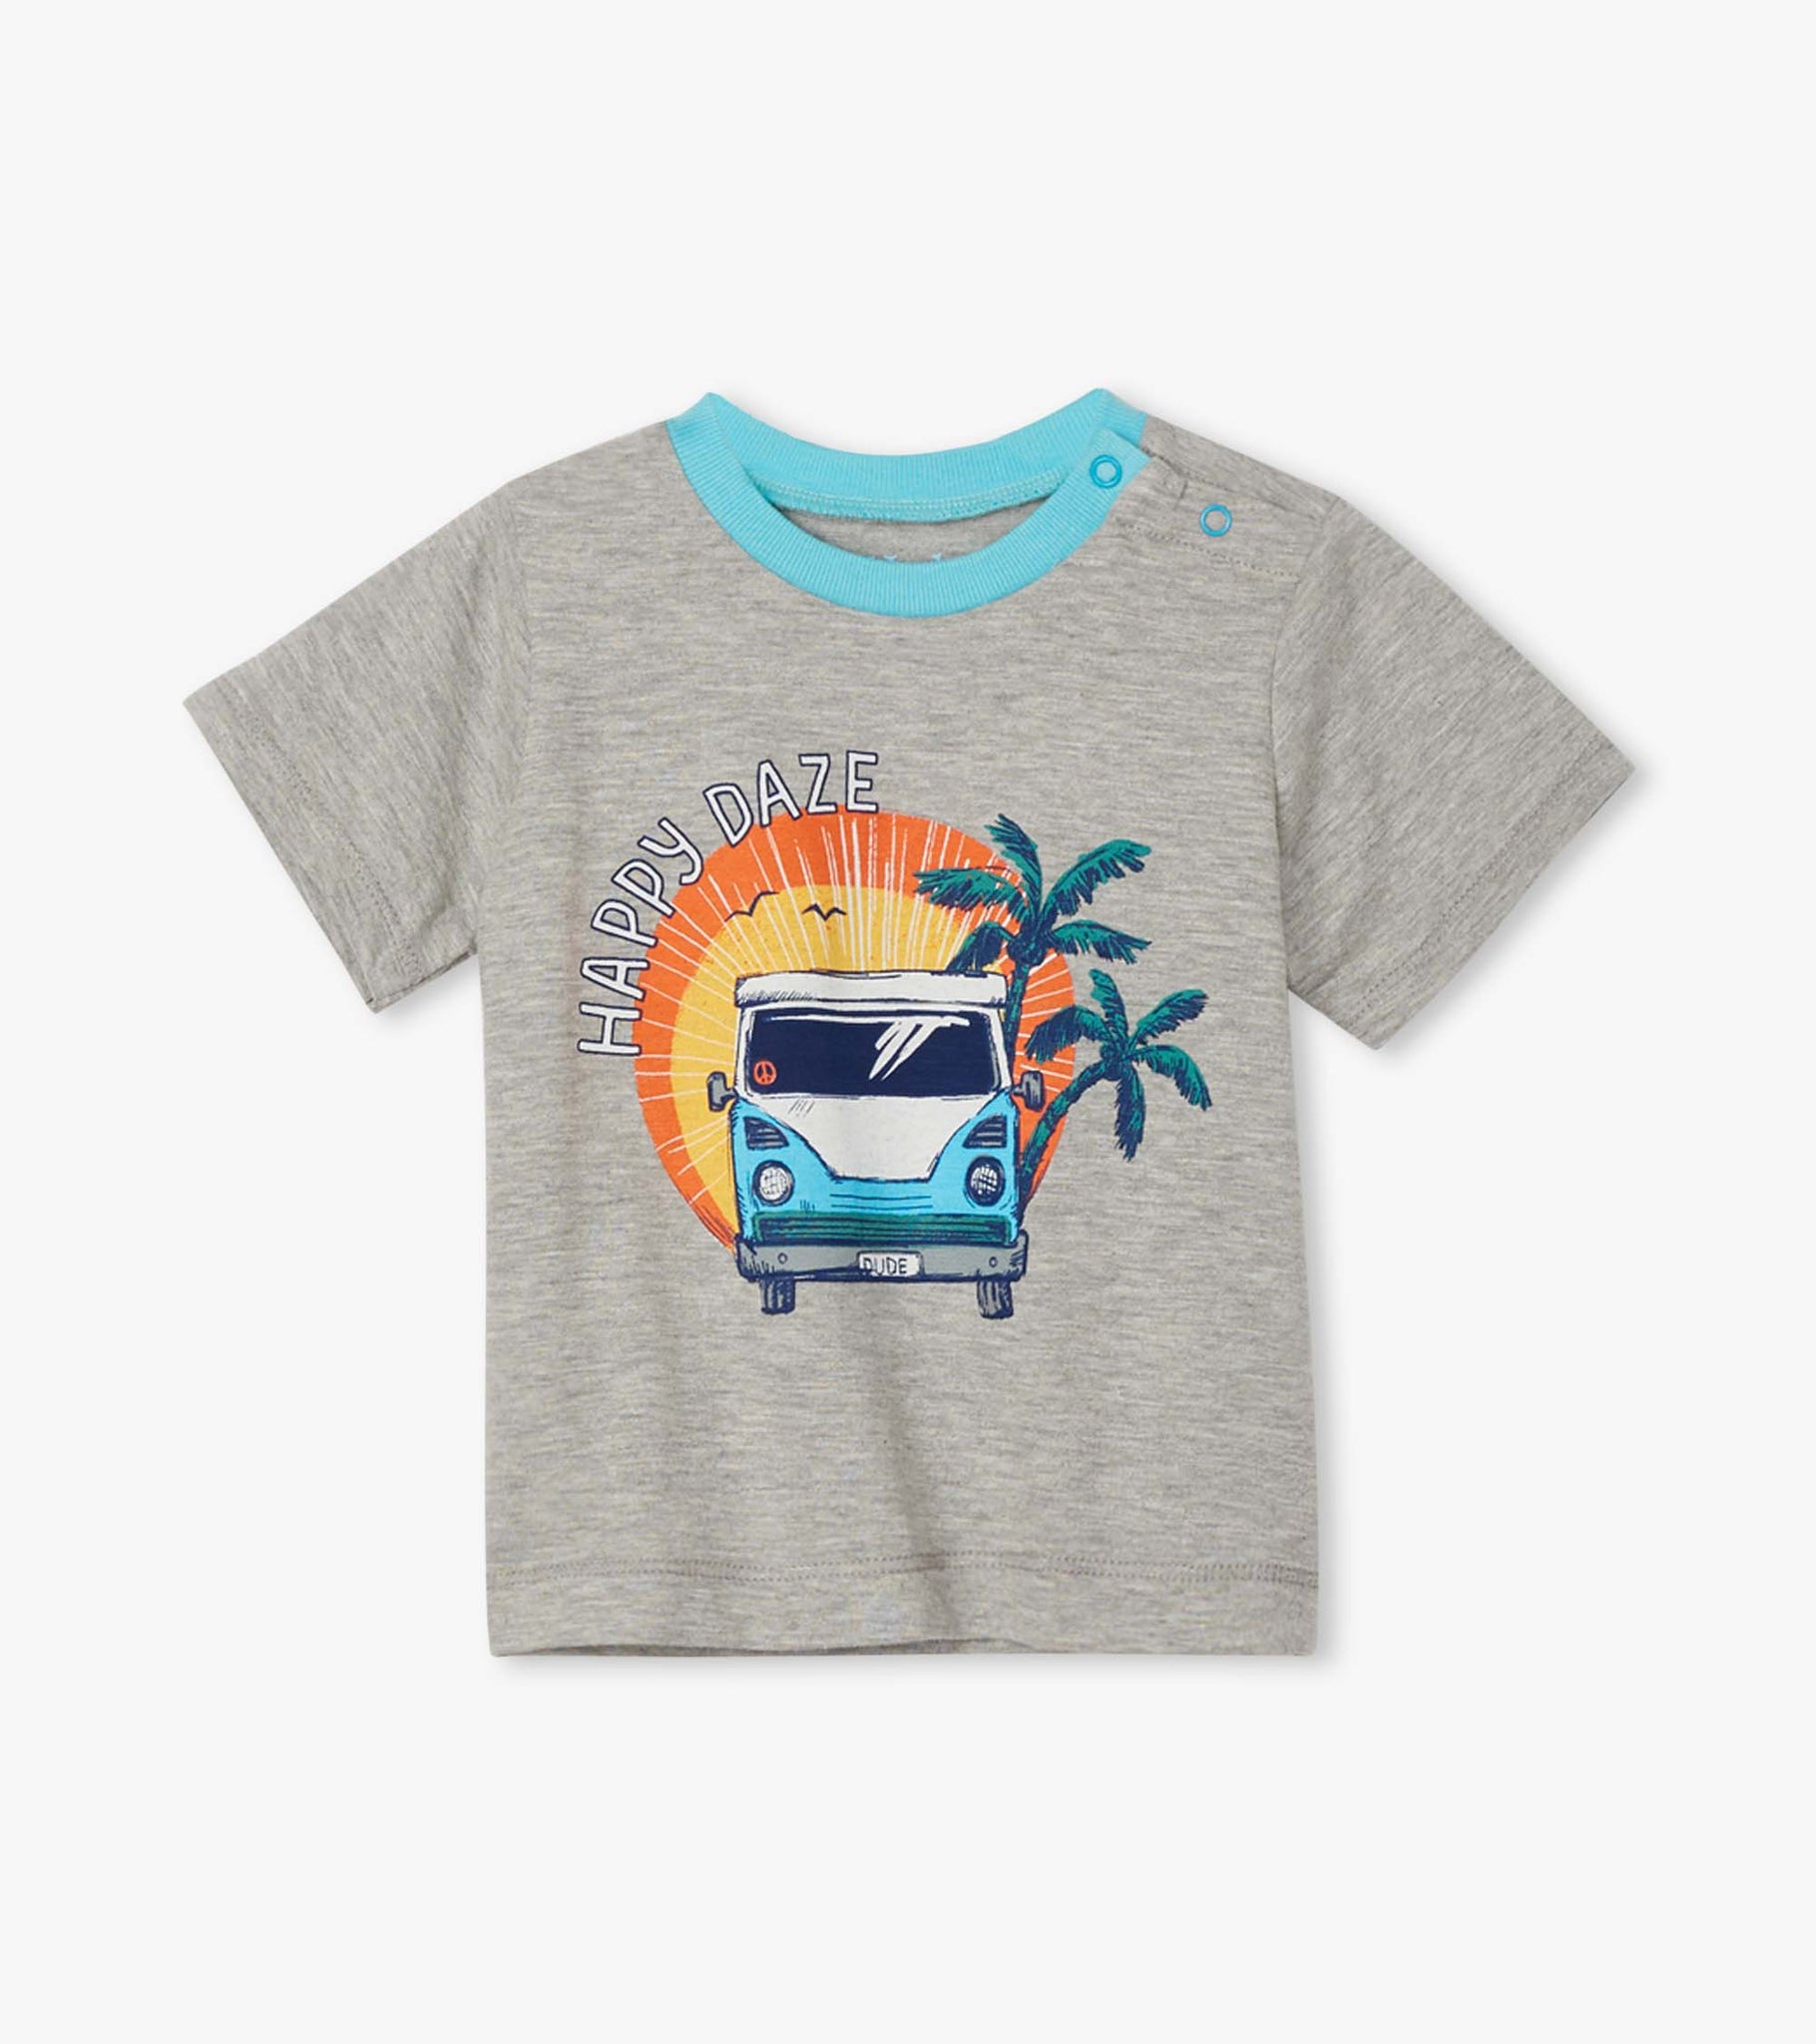 Hatley Baby Boy Summer Vacation Graphic T-shirt